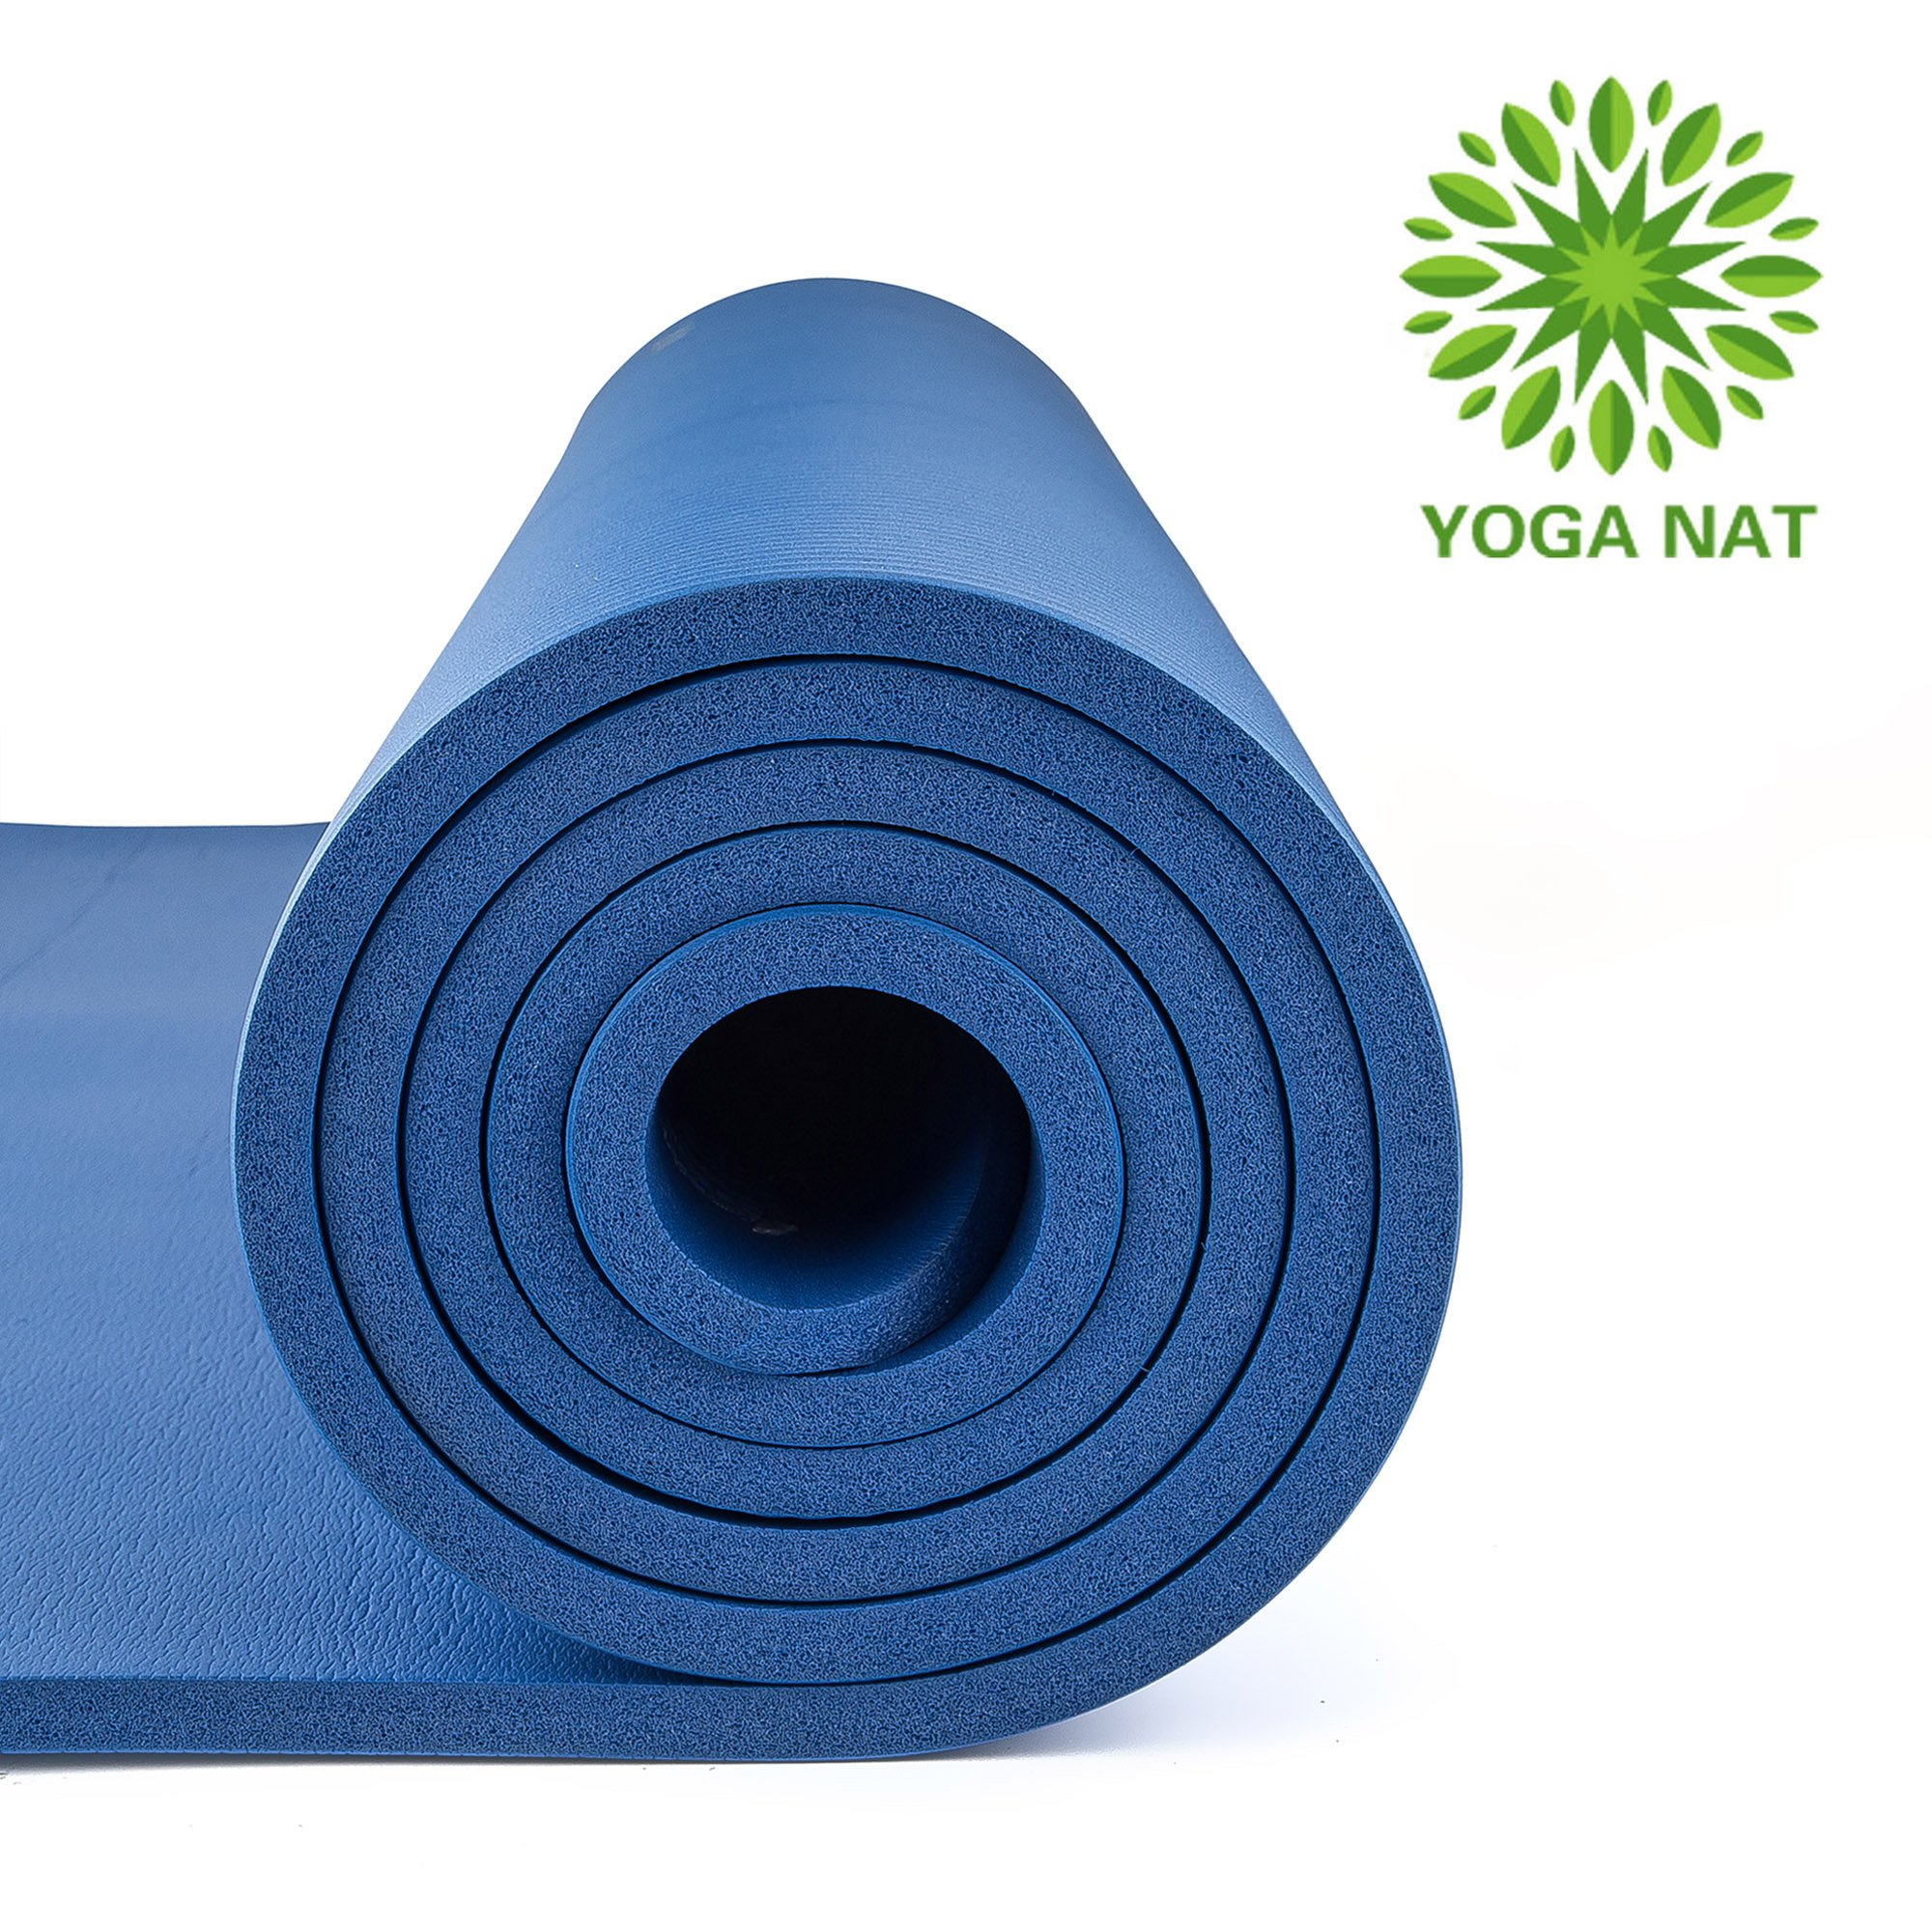 "Yoga Nat Yoga Mat, Mat 2/5"" Thickness 72"" Long 24"" Wide NBR Multiple Use Exercise and Yoga Mat with Carrying Travel Bag and Strap"